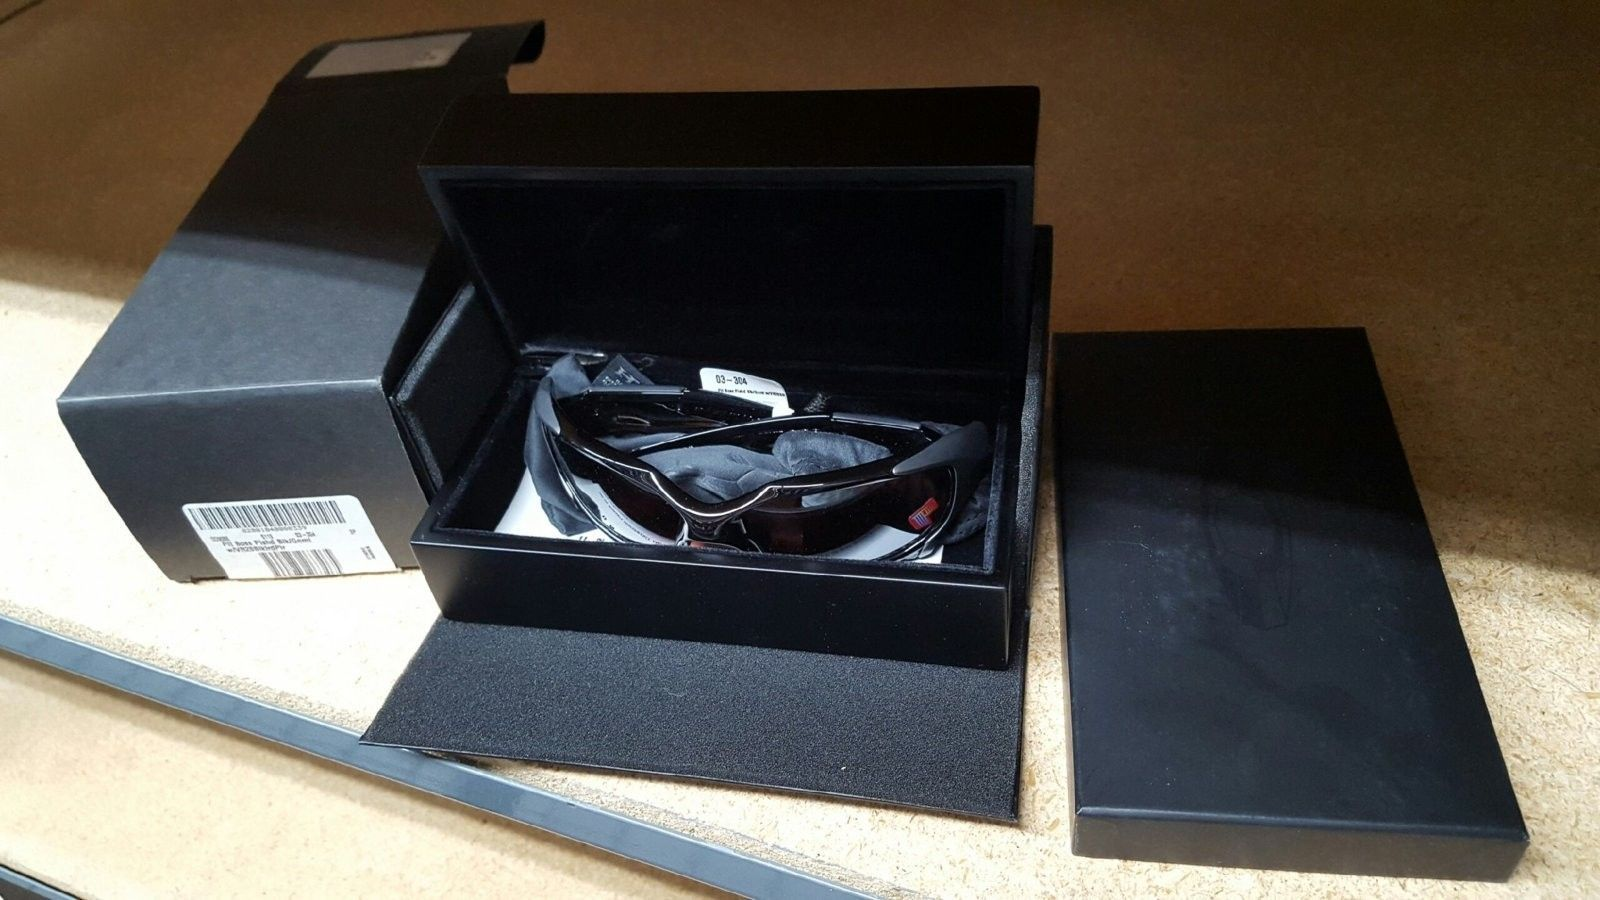 Pit Boss 1 Polished w/ VR28 Black Polarized BNIB - Photo Mar 10-3.jpeg